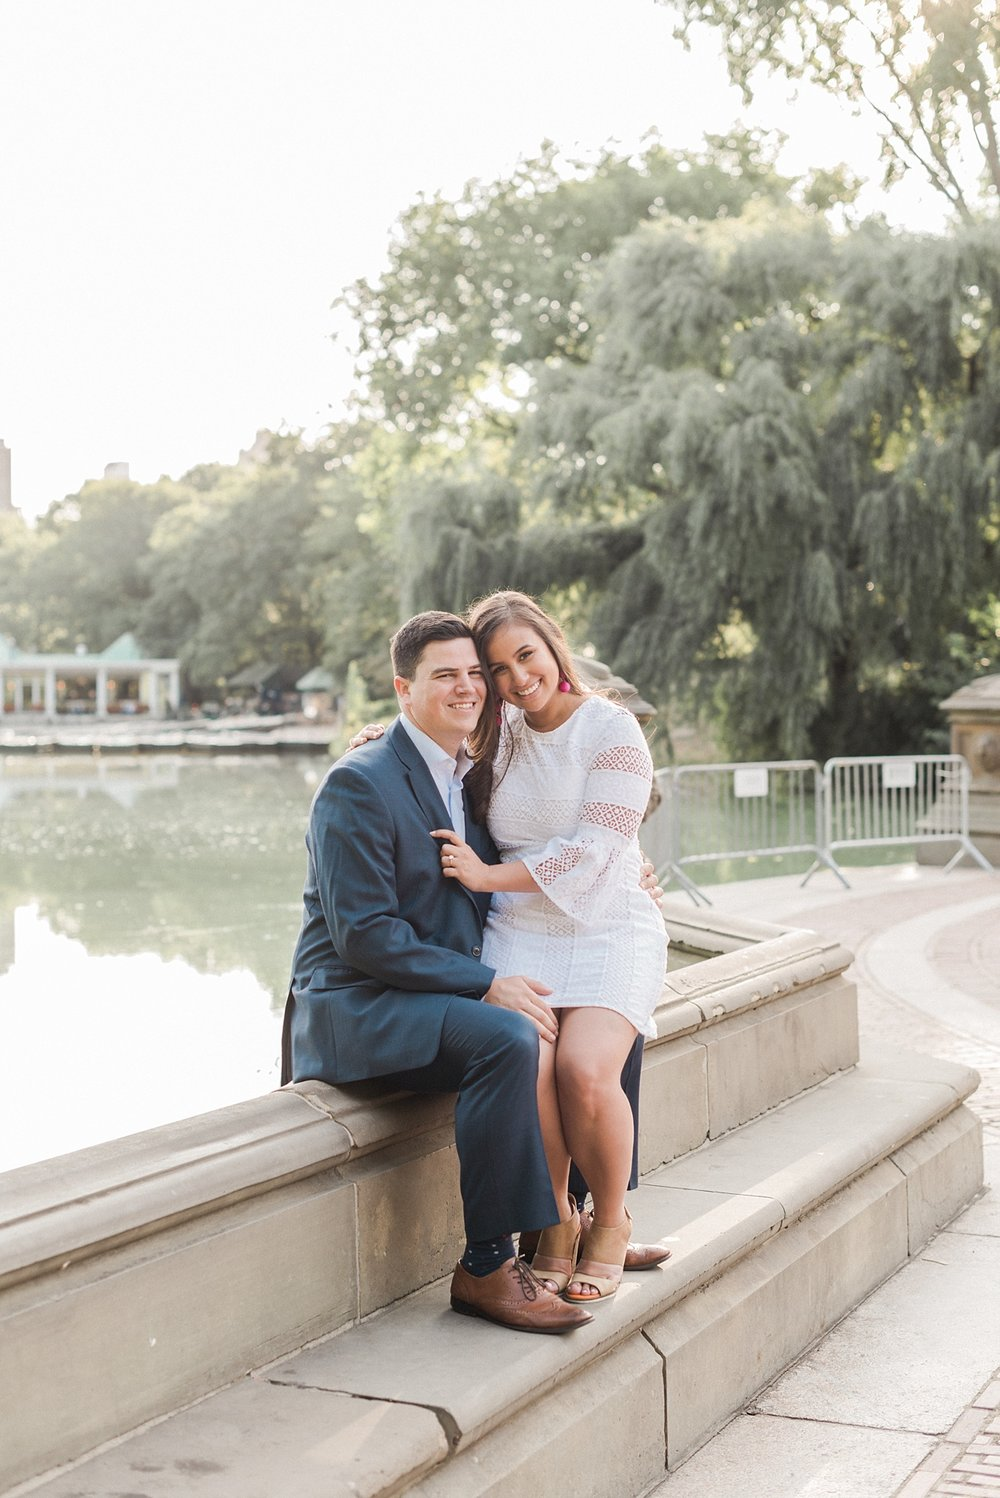 Kimberly Florence Photography_Loeb Boathouse_Central Park Engagement Session_New York City Wedding Photographer_NYC wedding_new york wedding_0058.jpg